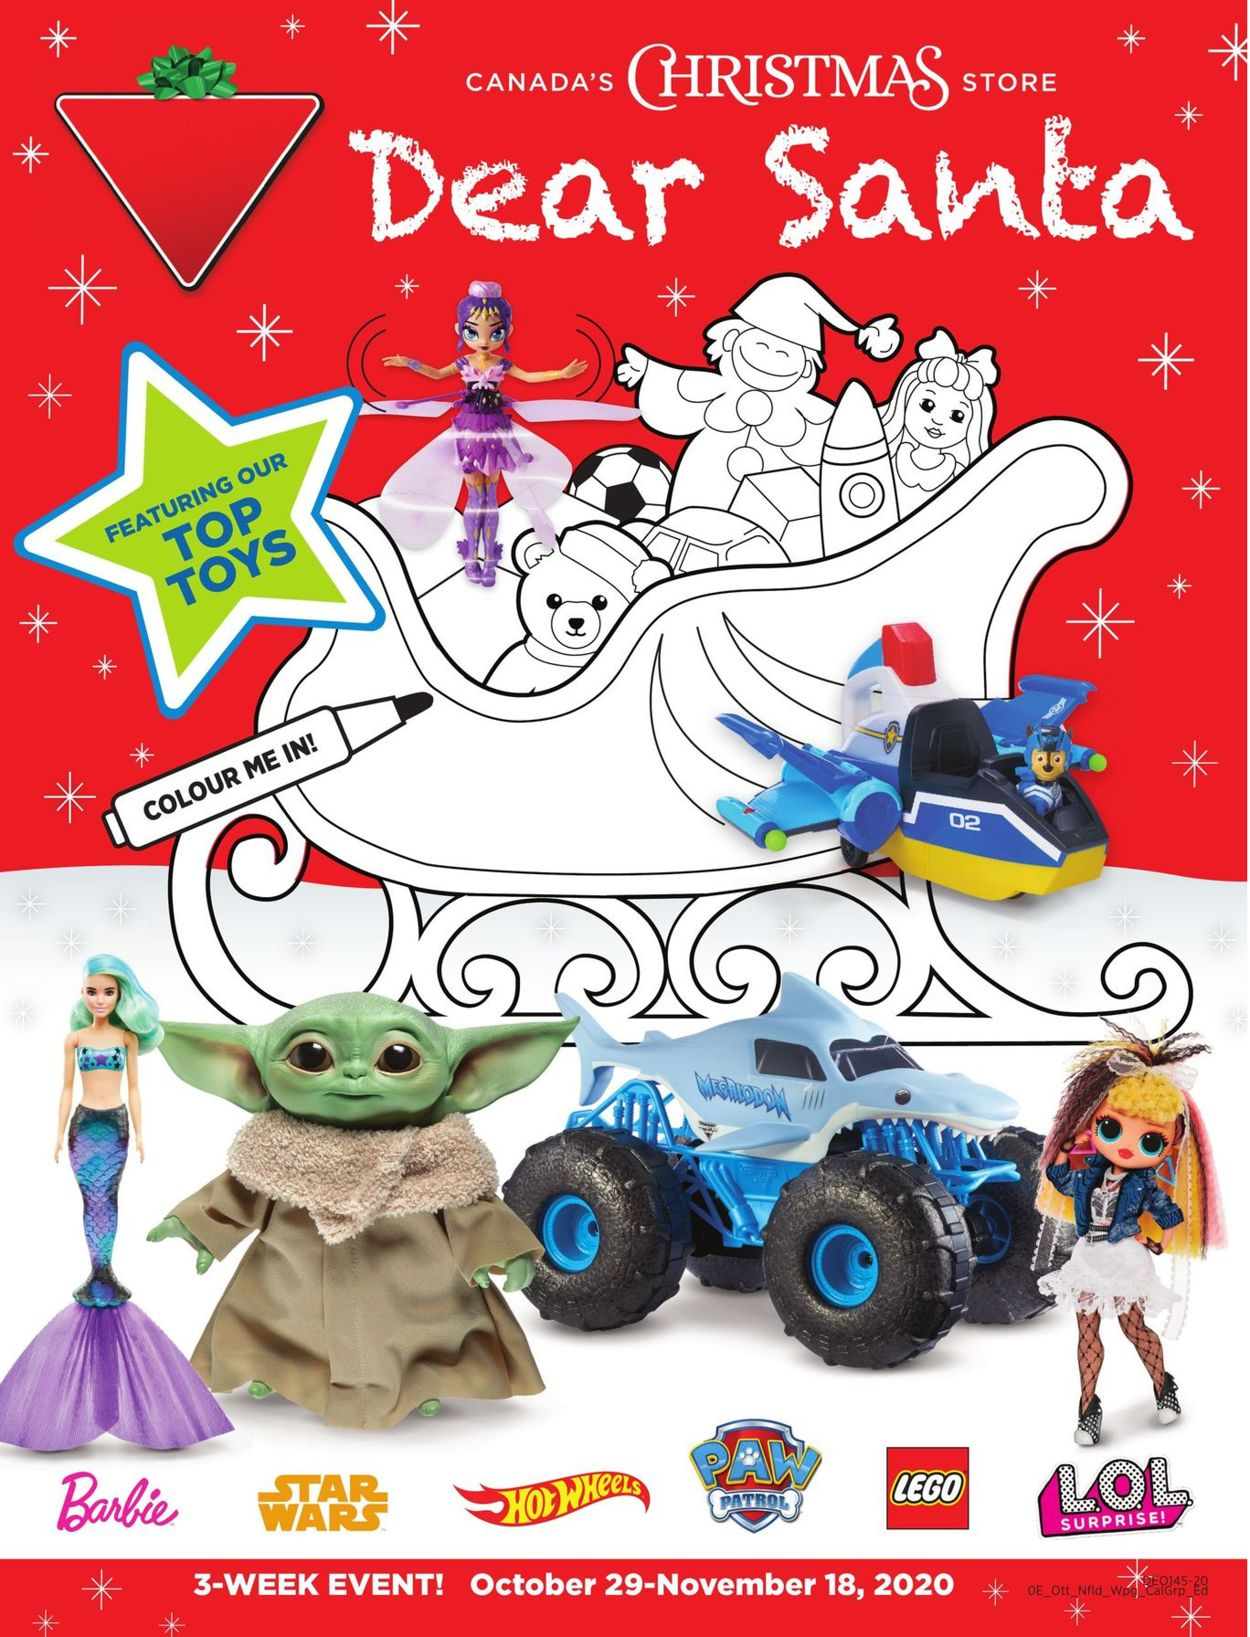 Canadian Tire - Christmas 2020 Flyer - 10/29-11/18/2020